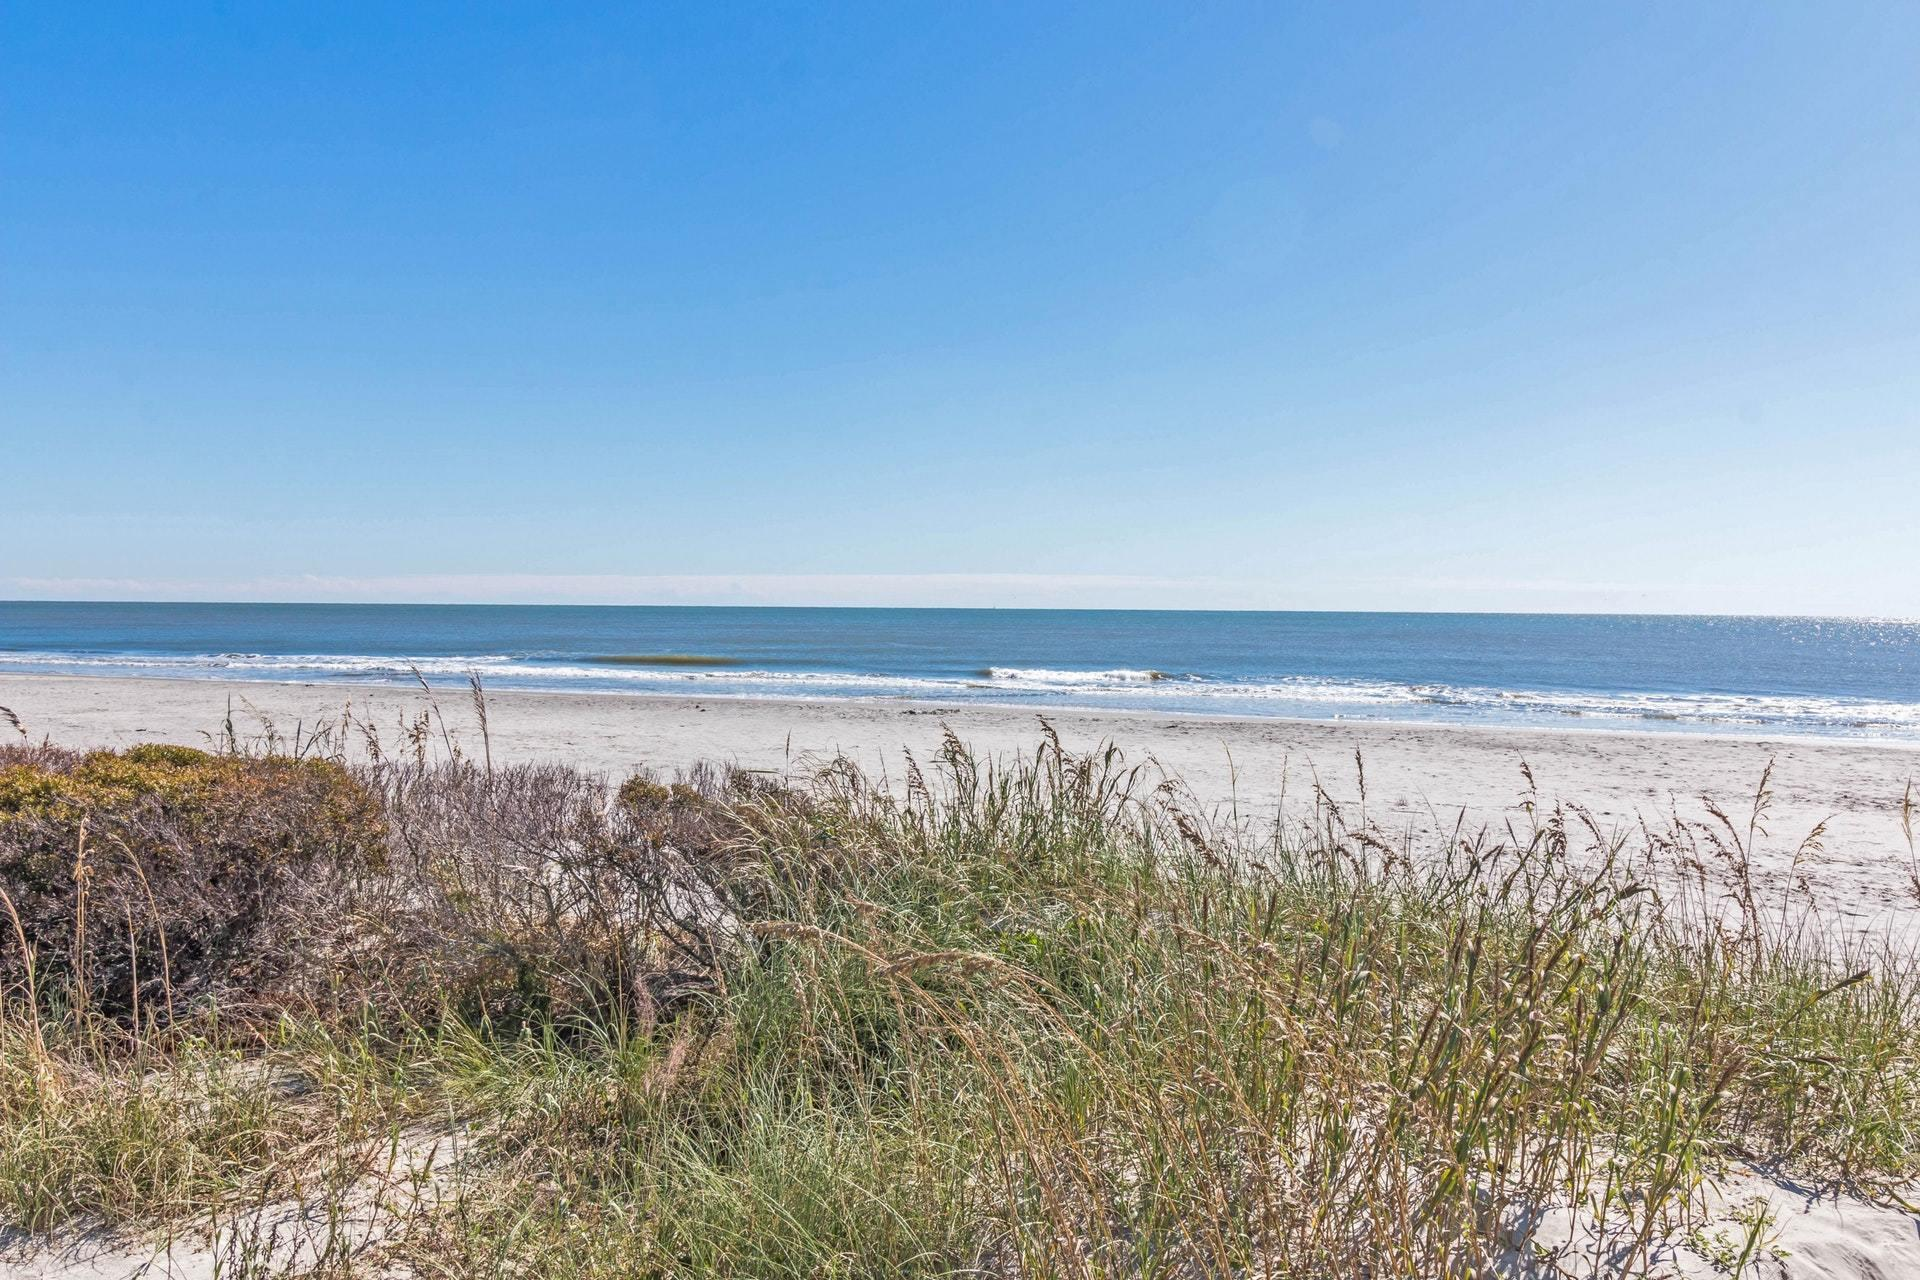 Beach Club Villas Homes For Sale - 51 Beach Club Villas, Isle of Palms, SC - 26